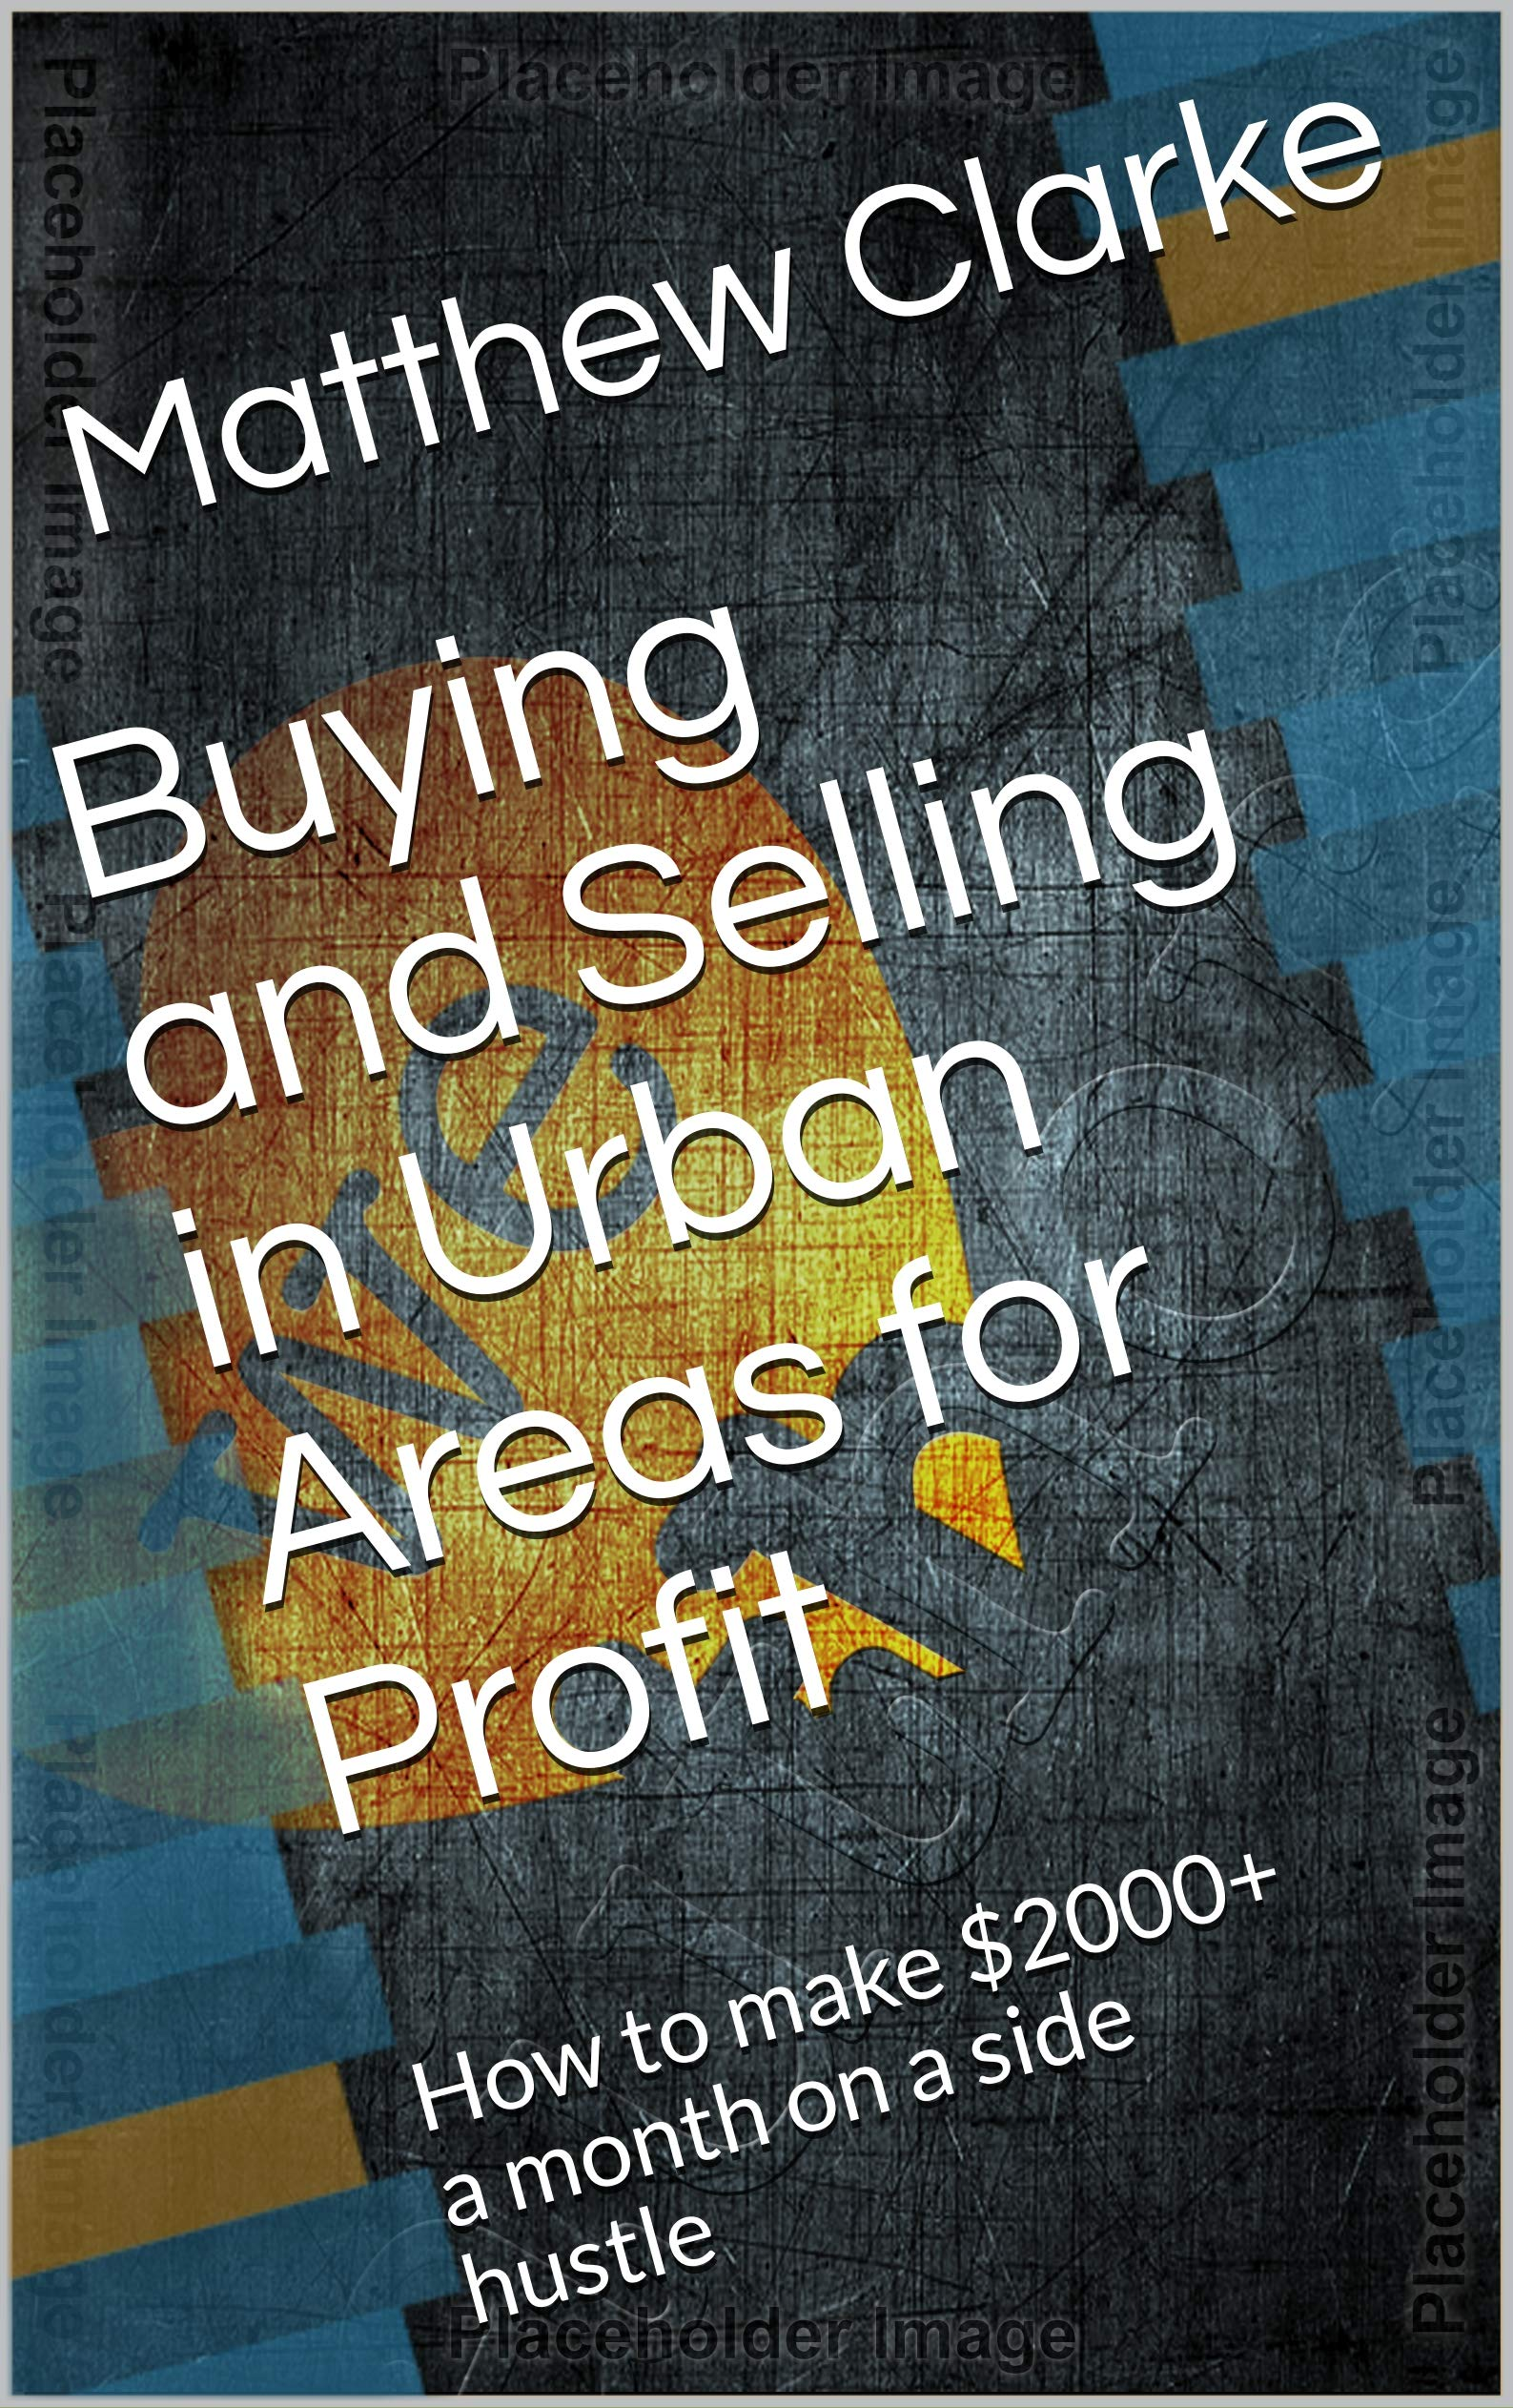 Buying and Selling in Urban Areas for Profit: How to make $2000+ a month on a side hustle (The Entrepreneurs Guide Book 1) Matthew Clarke